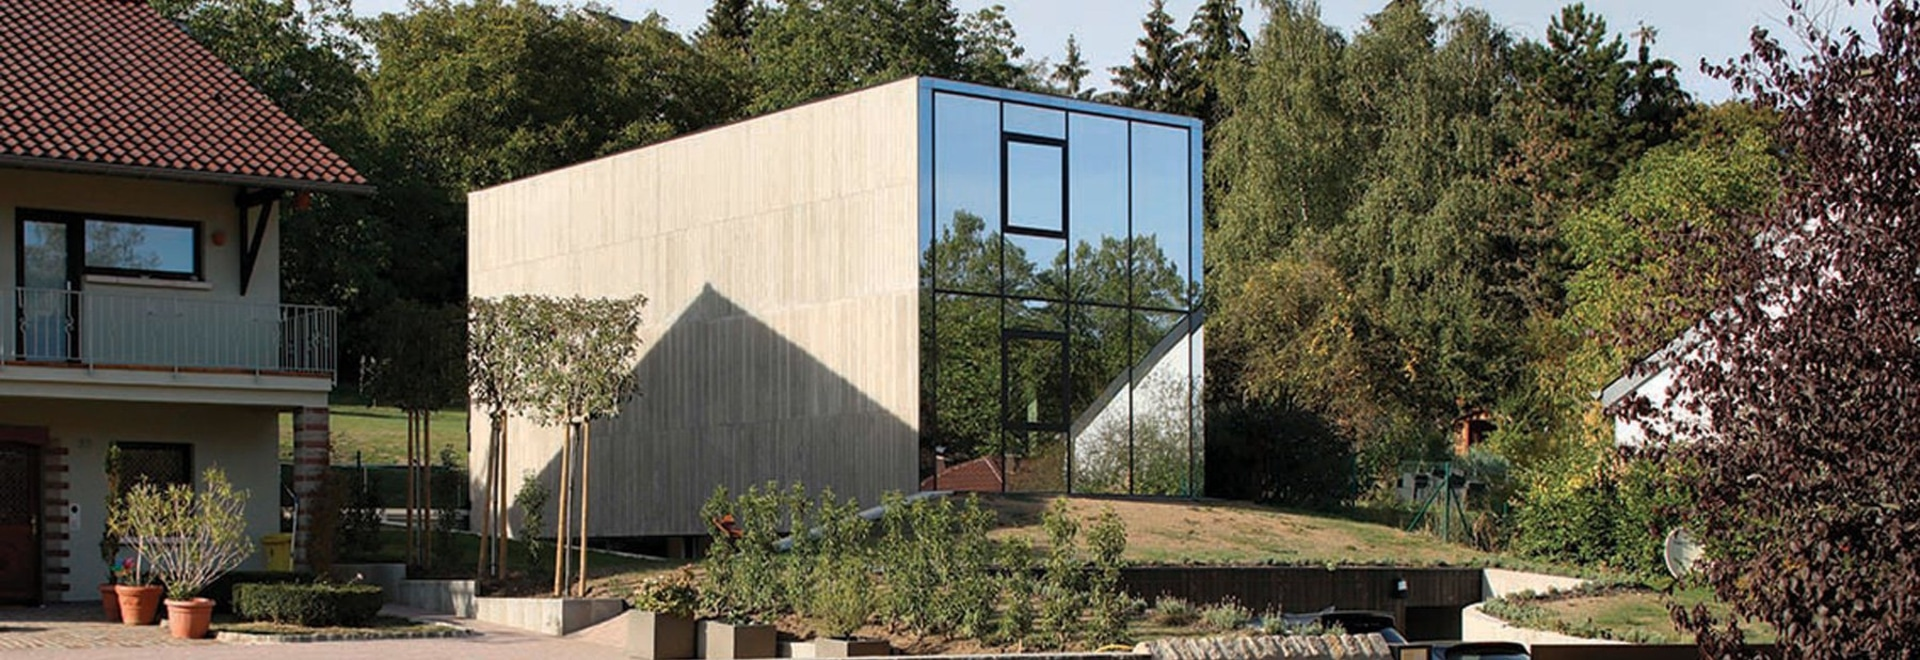 single-family house by 2001 juts like a concrete monolith from the ground